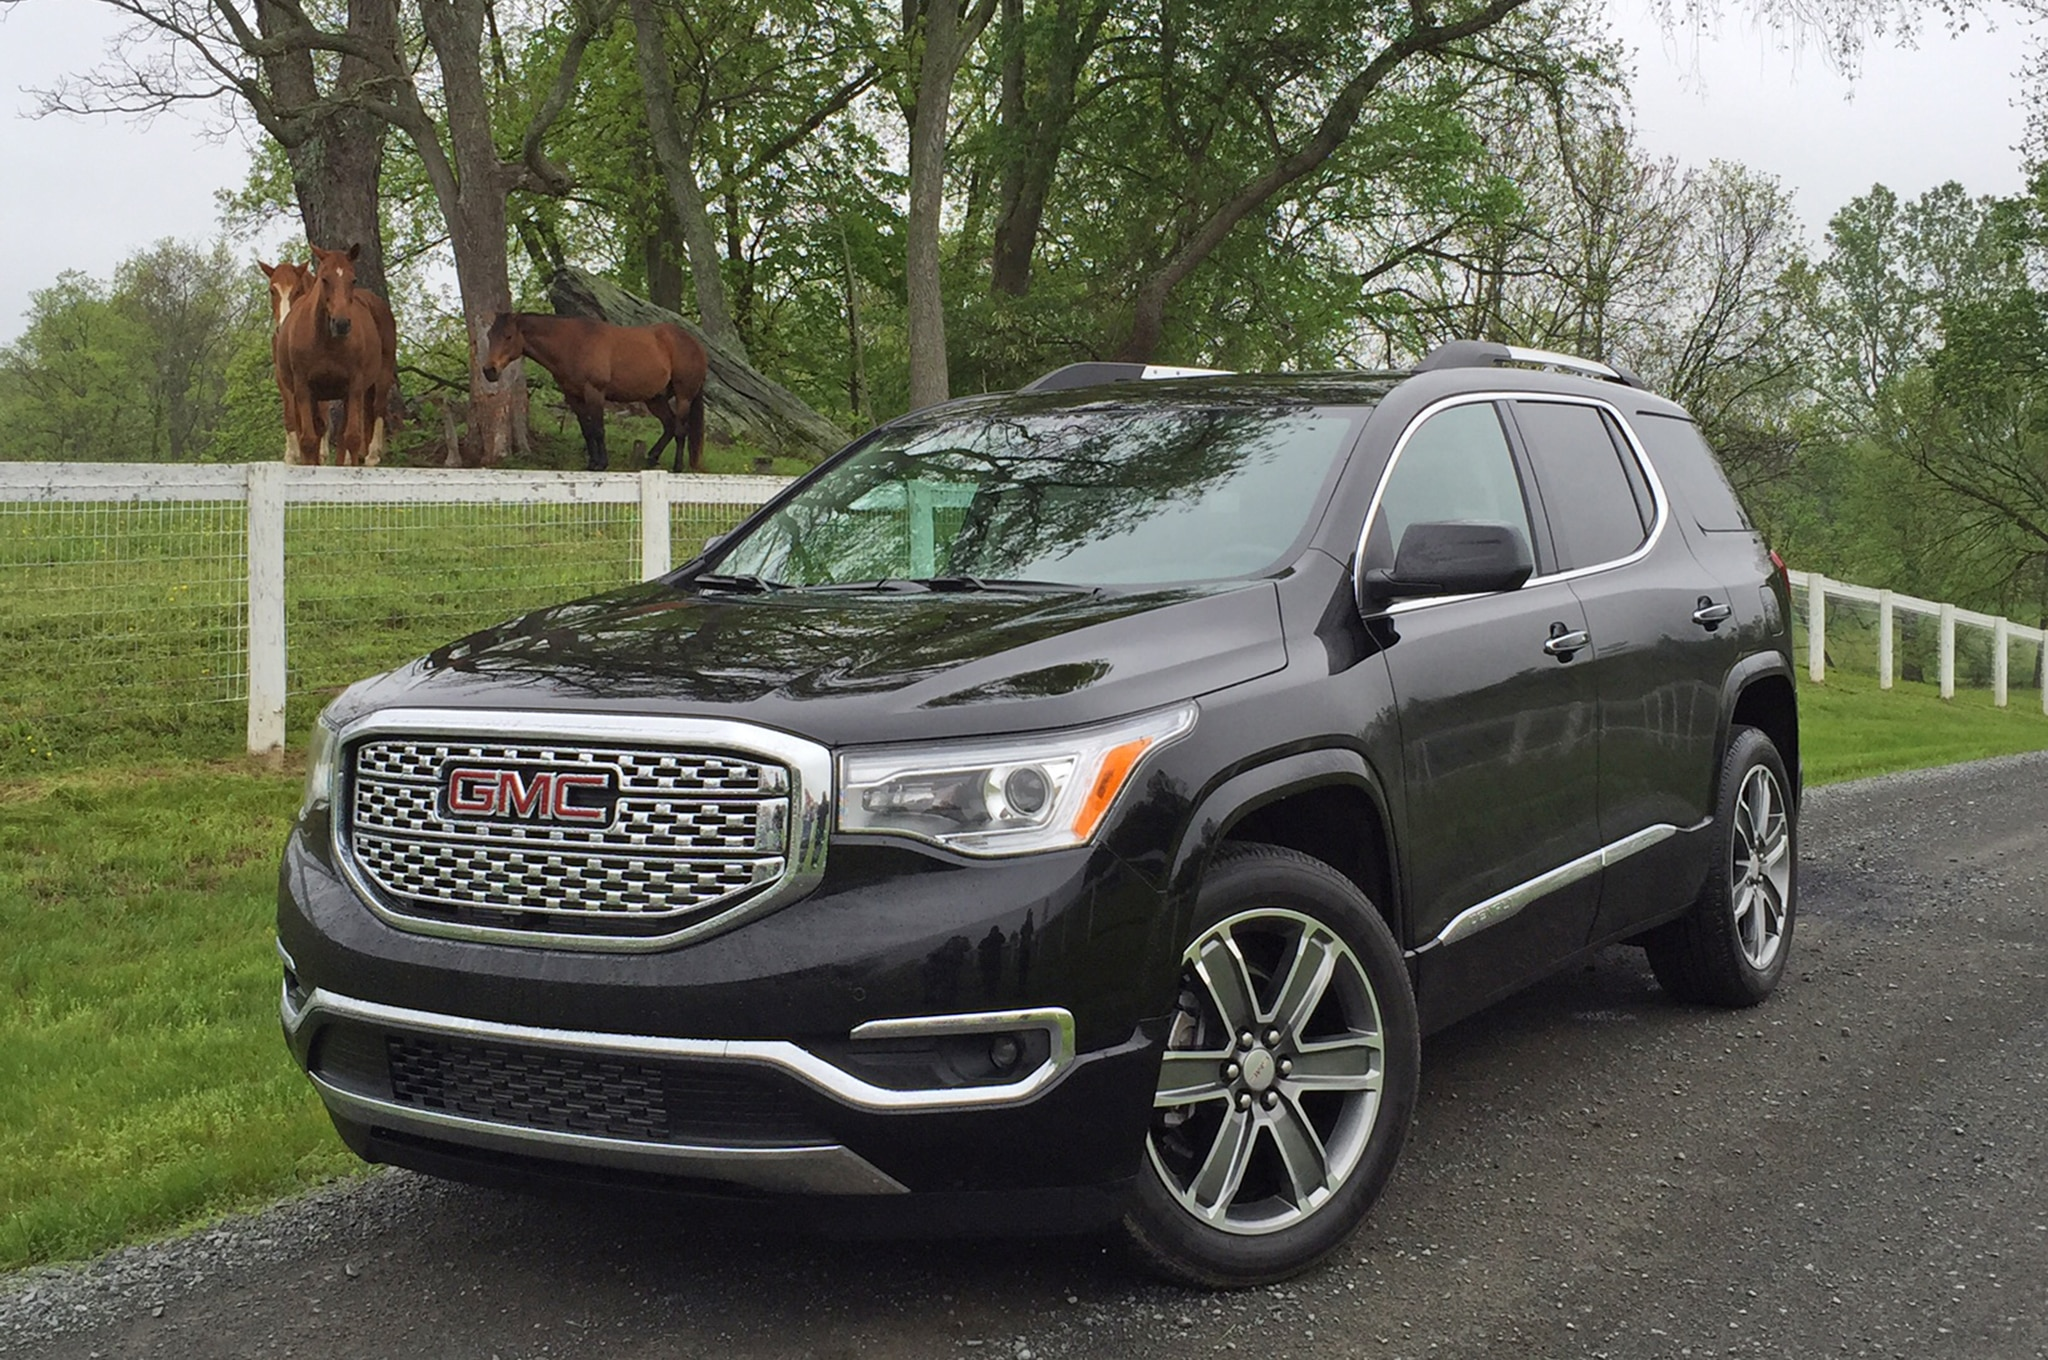 2017 gmc acadia teased before detroit reveal. Black Bedroom Furniture Sets. Home Design Ideas